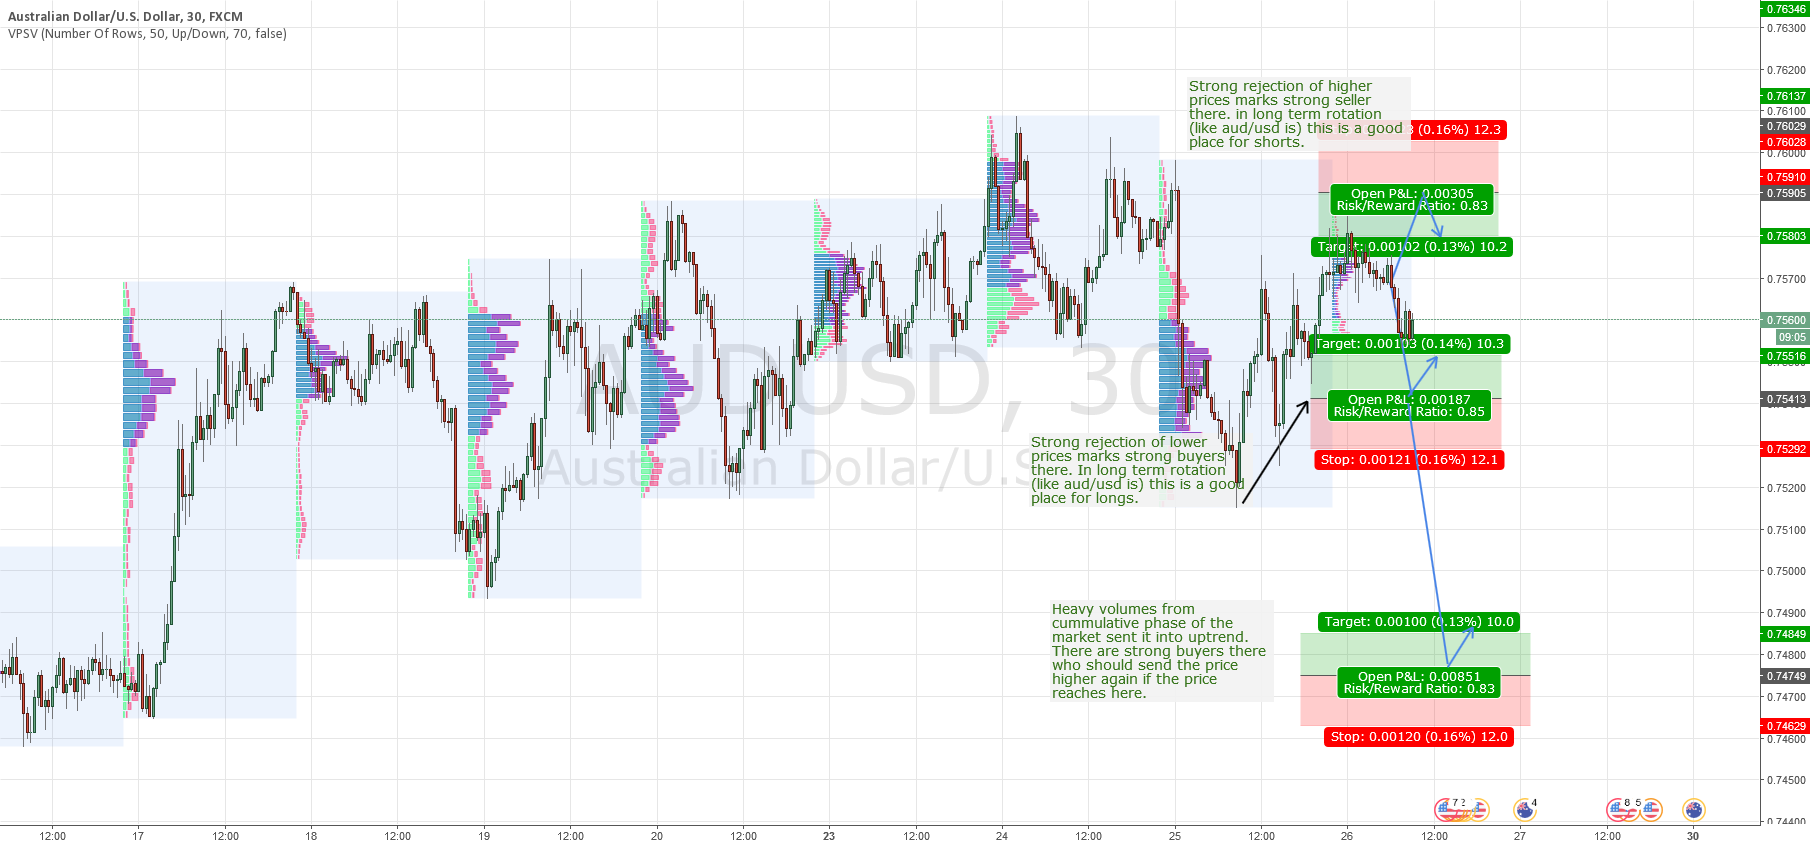 AUD/USD intraday levels for 26.1.2016